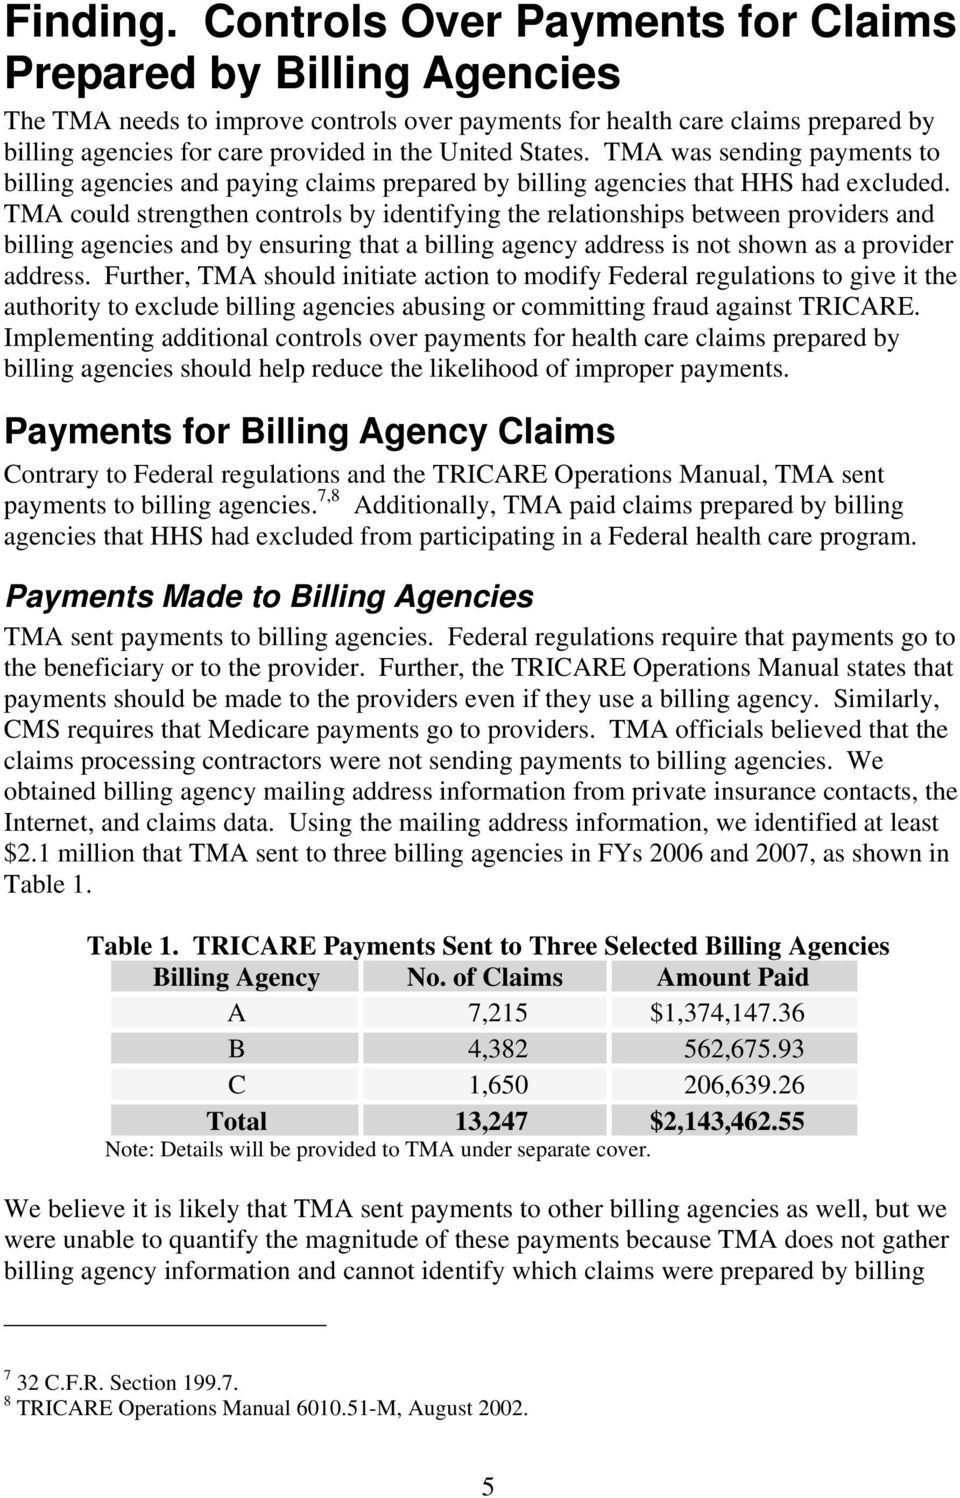 States. TMA was sending payments to billing agencies and paying claims prepared by billing agencies that HHS had excluded.